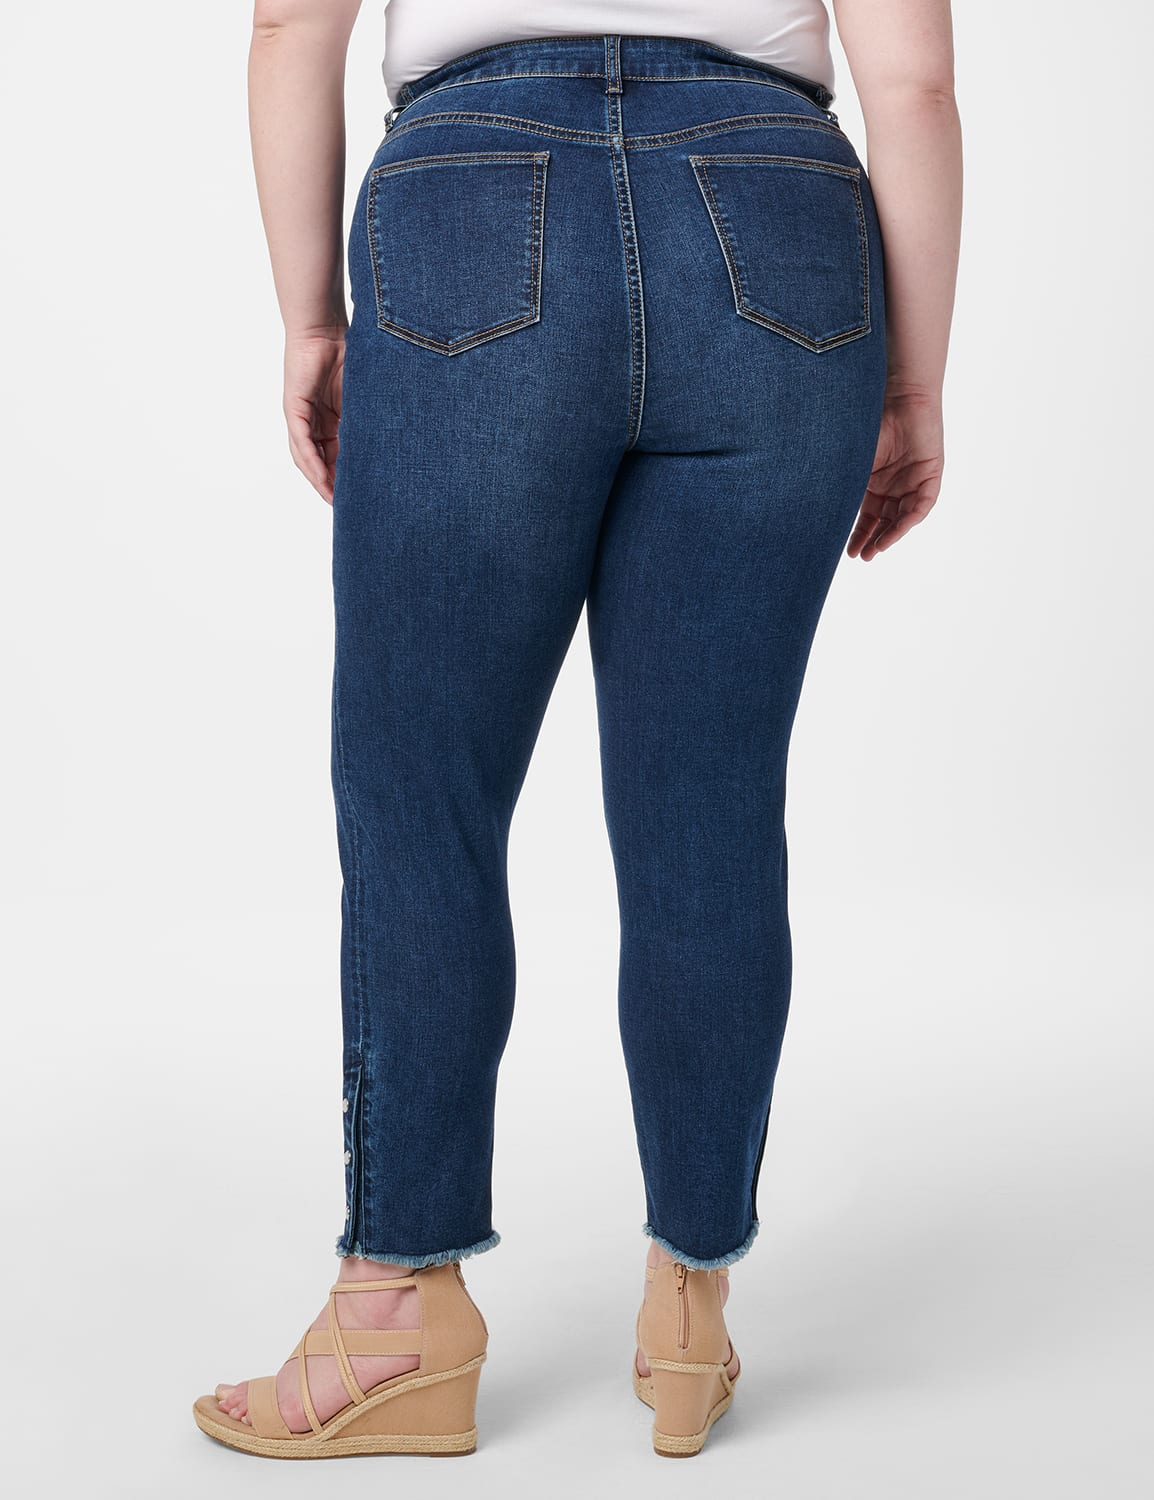 Westport Signature 5 Pocket Skinny Ankle Jean With Snap Button At Ankle - Plus - Dark Wash - Back